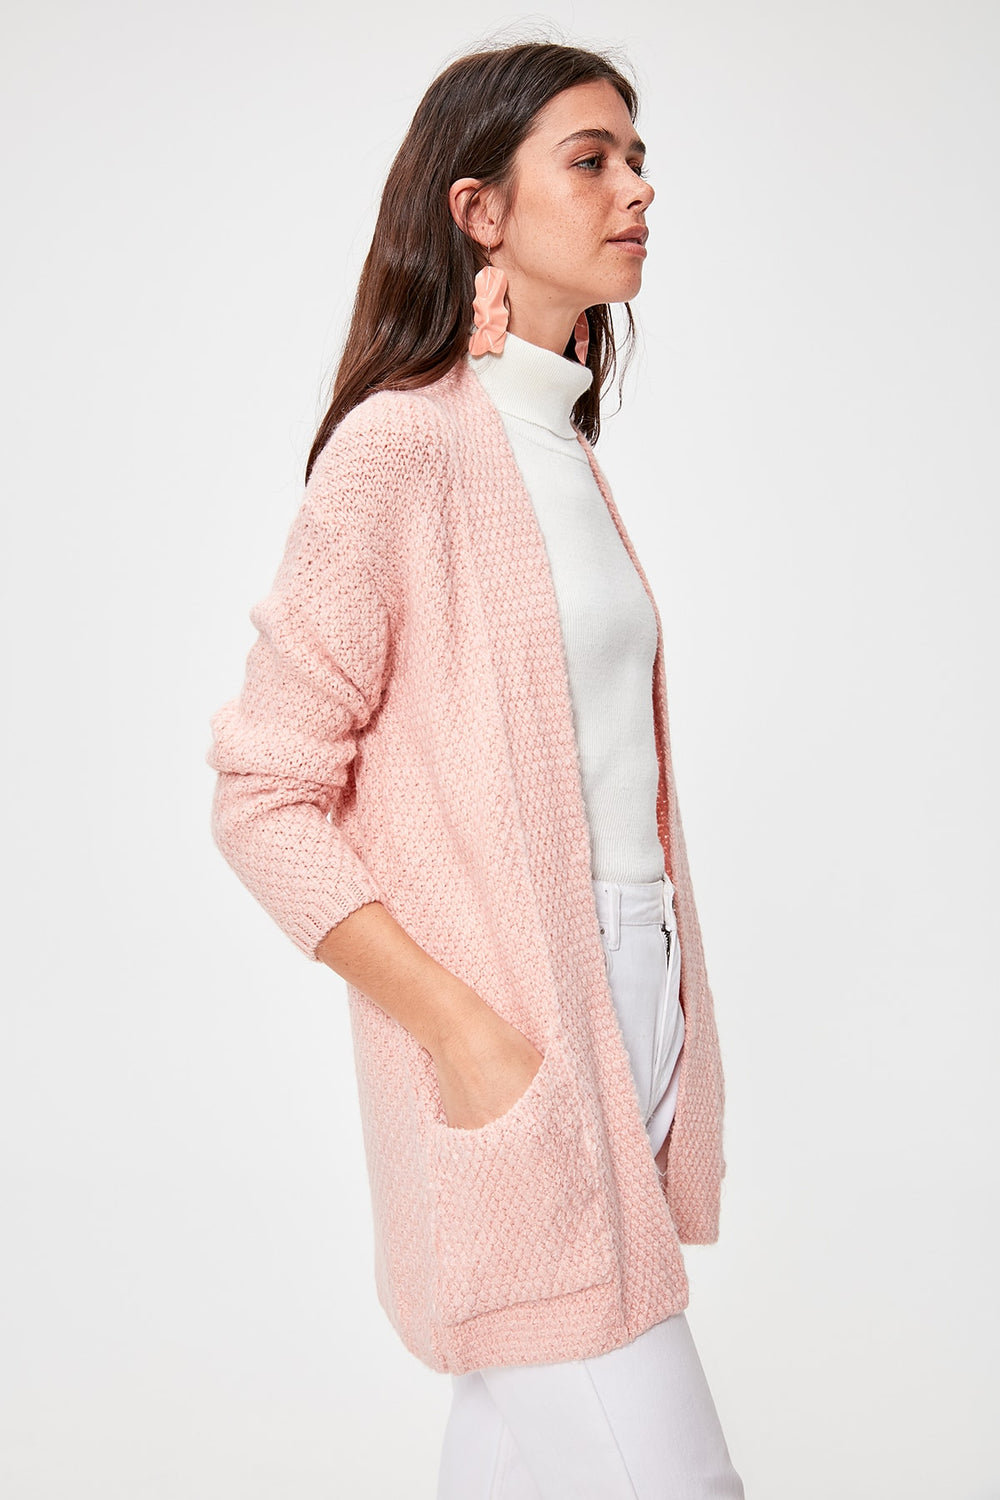 Miss Zut Miss Zut Pocket Sweater Cardigan Miss Zut &CO